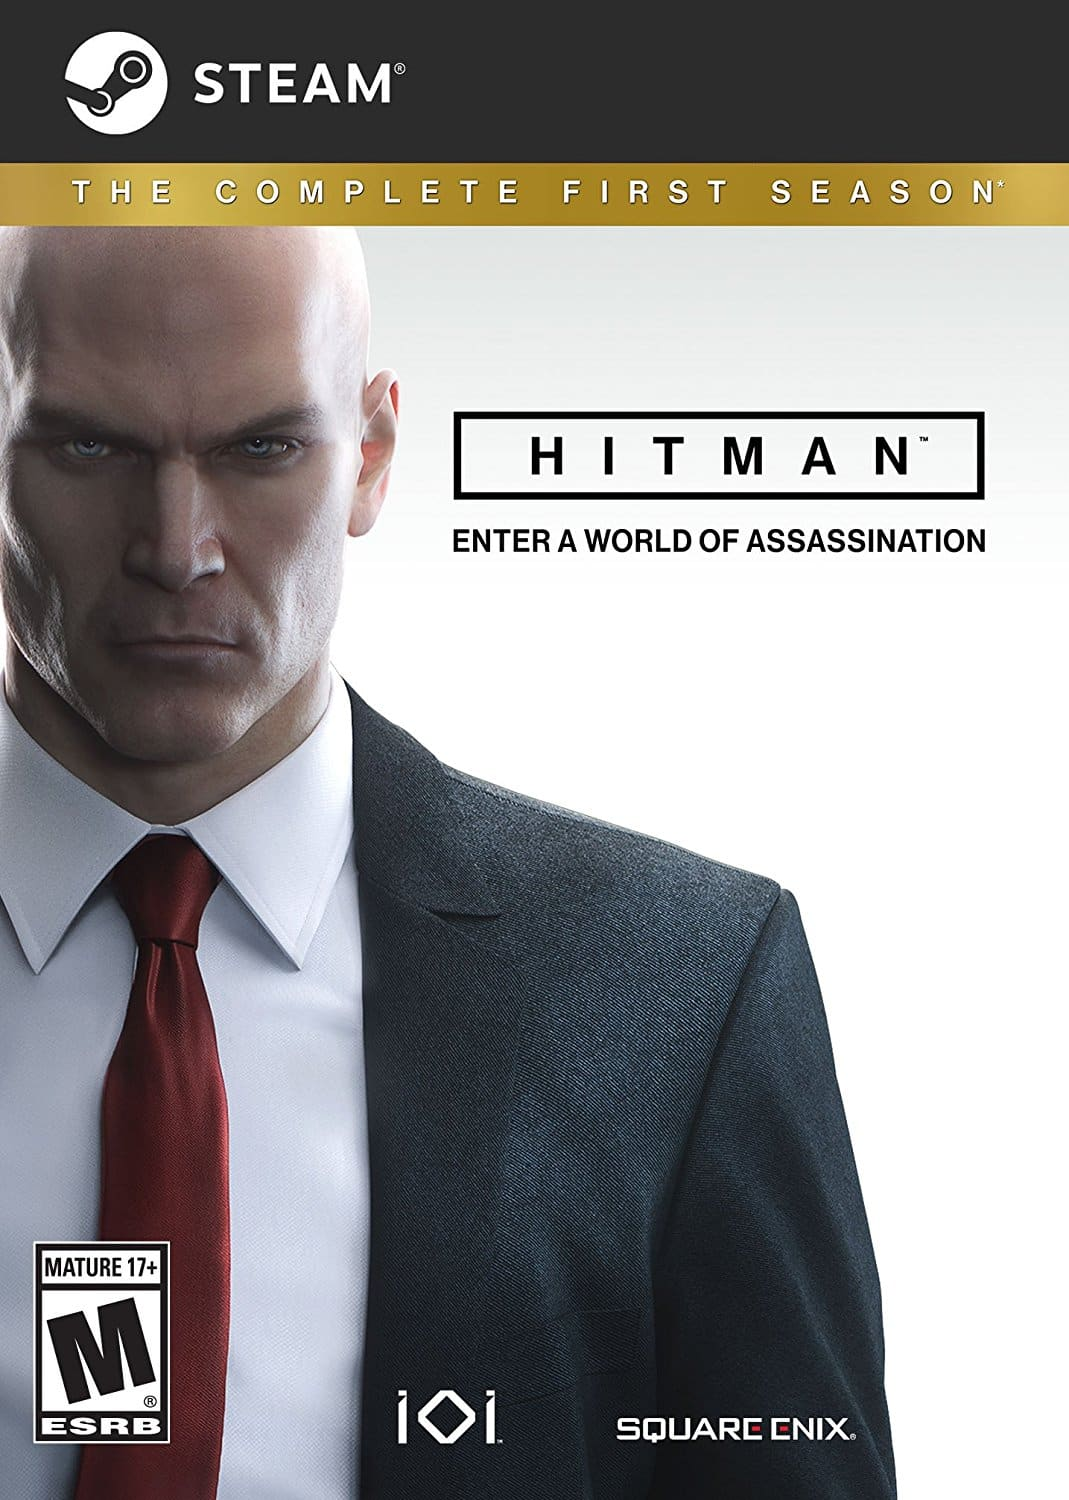 Hitman 2016 Complete first season 66% off $23.80 [PC][STEAM]